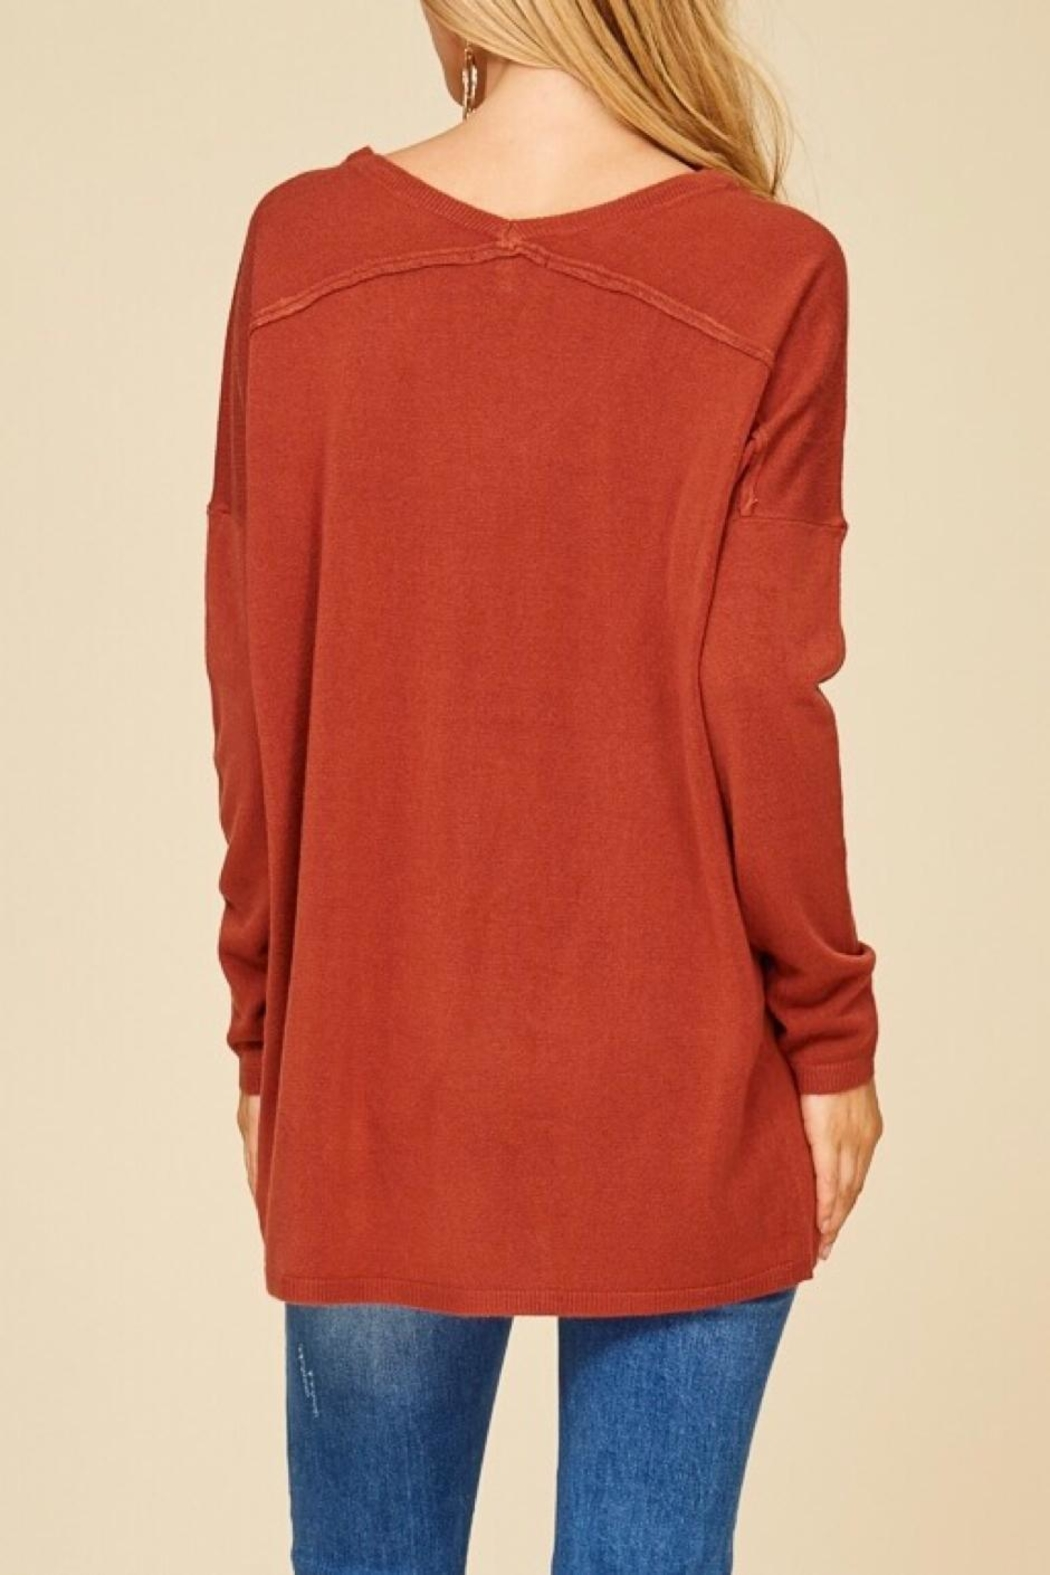 Staccato Oversized Tunic Sweater - Back Cropped Image